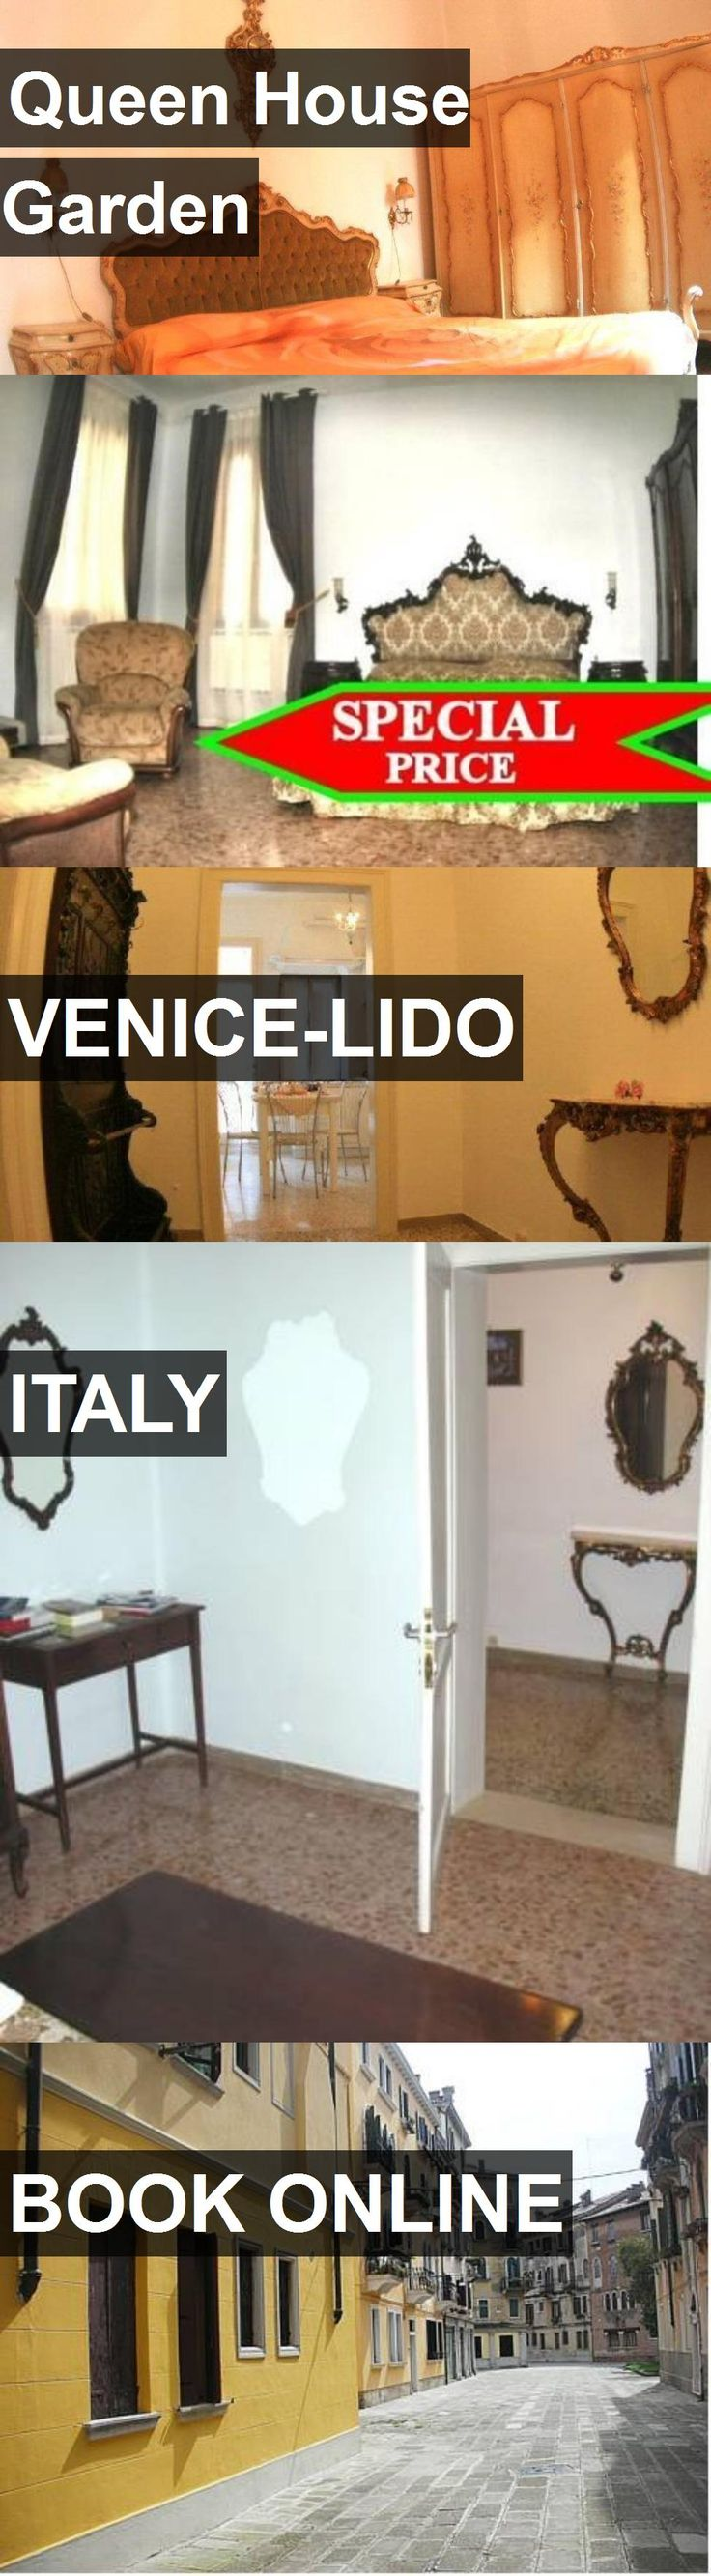 Hotel Queen House Garden in Venice-Lido, Italy. For more information, photos, reviews and best prices please follow the link. #Italy #Venice-Lido #travel #vacation #hotel